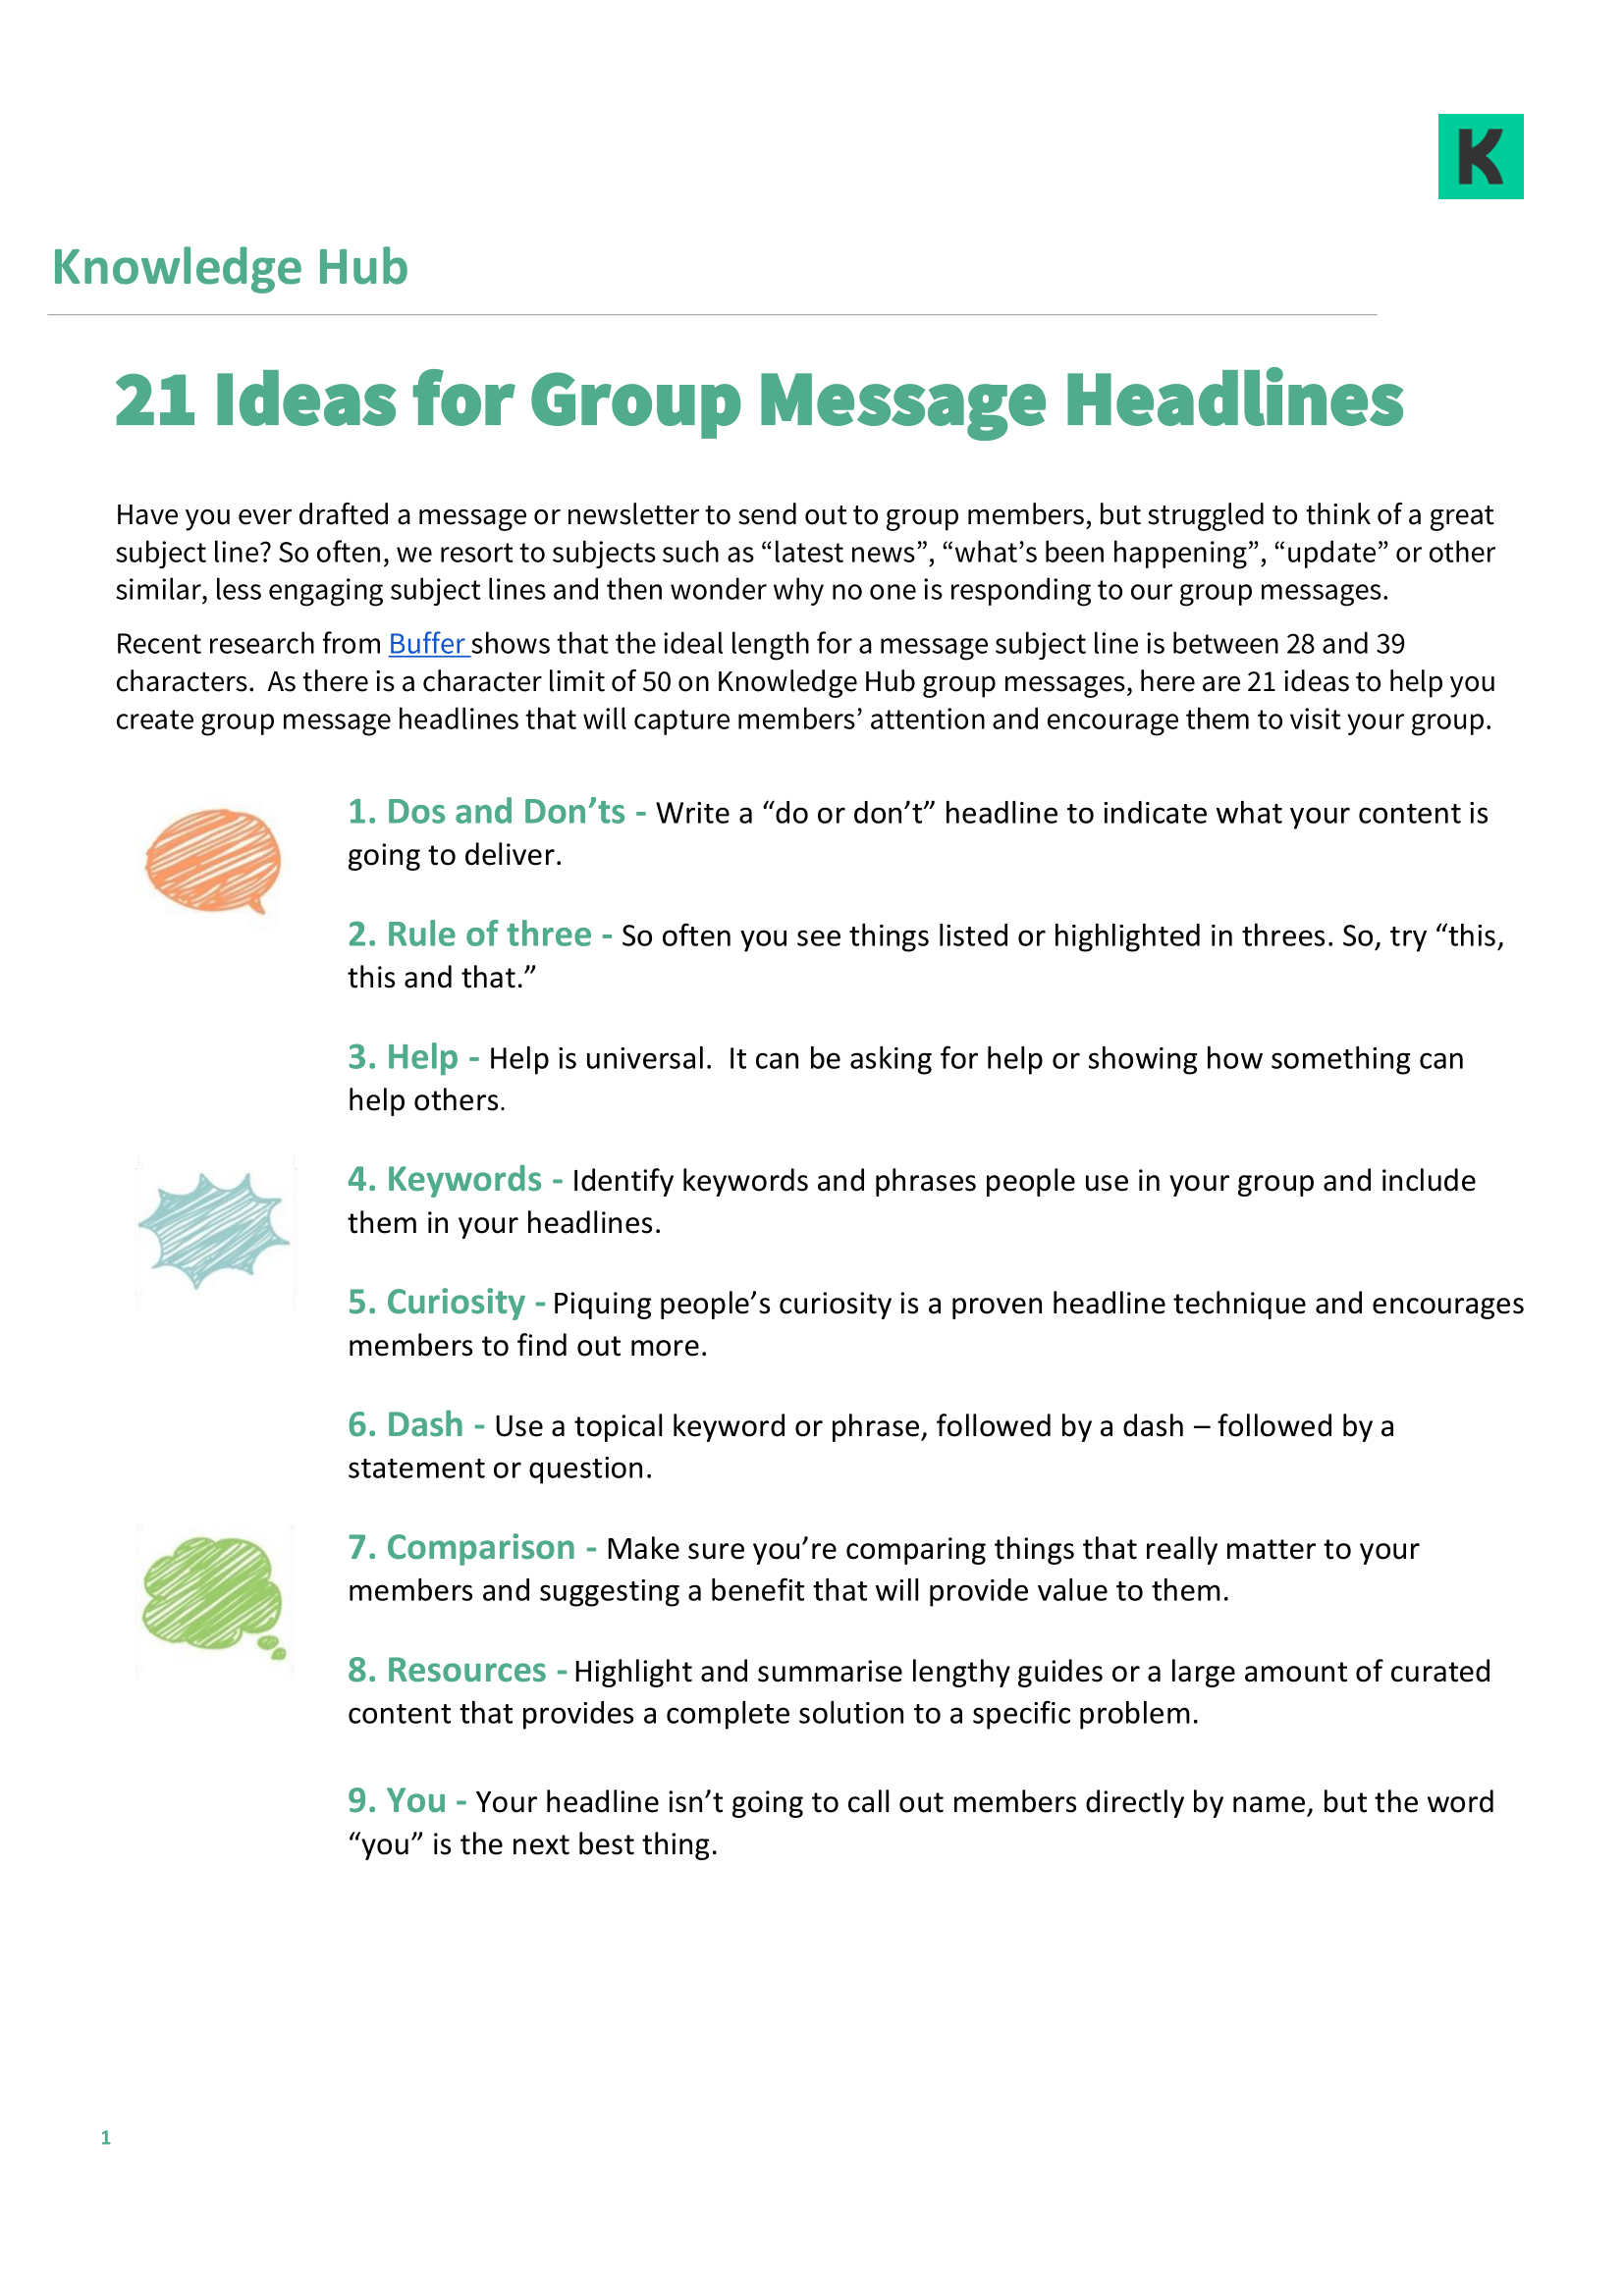 21 Ideas for Group Message Headlines (part 1)